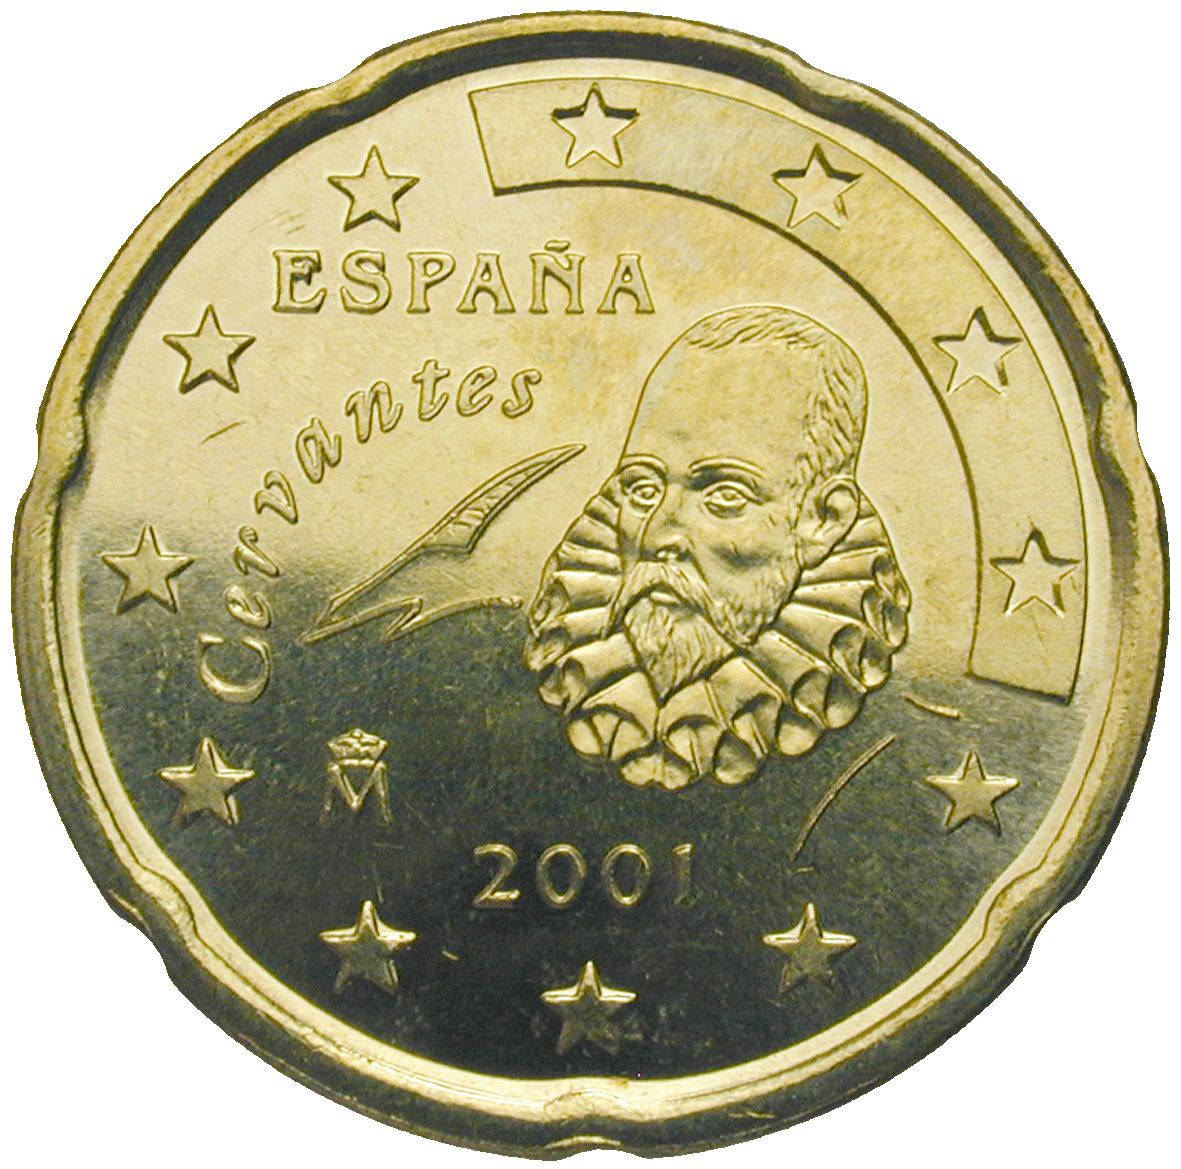 Kingdom of Spain, Juan Carlos, 20 Euro Cent 2001 (obverse)